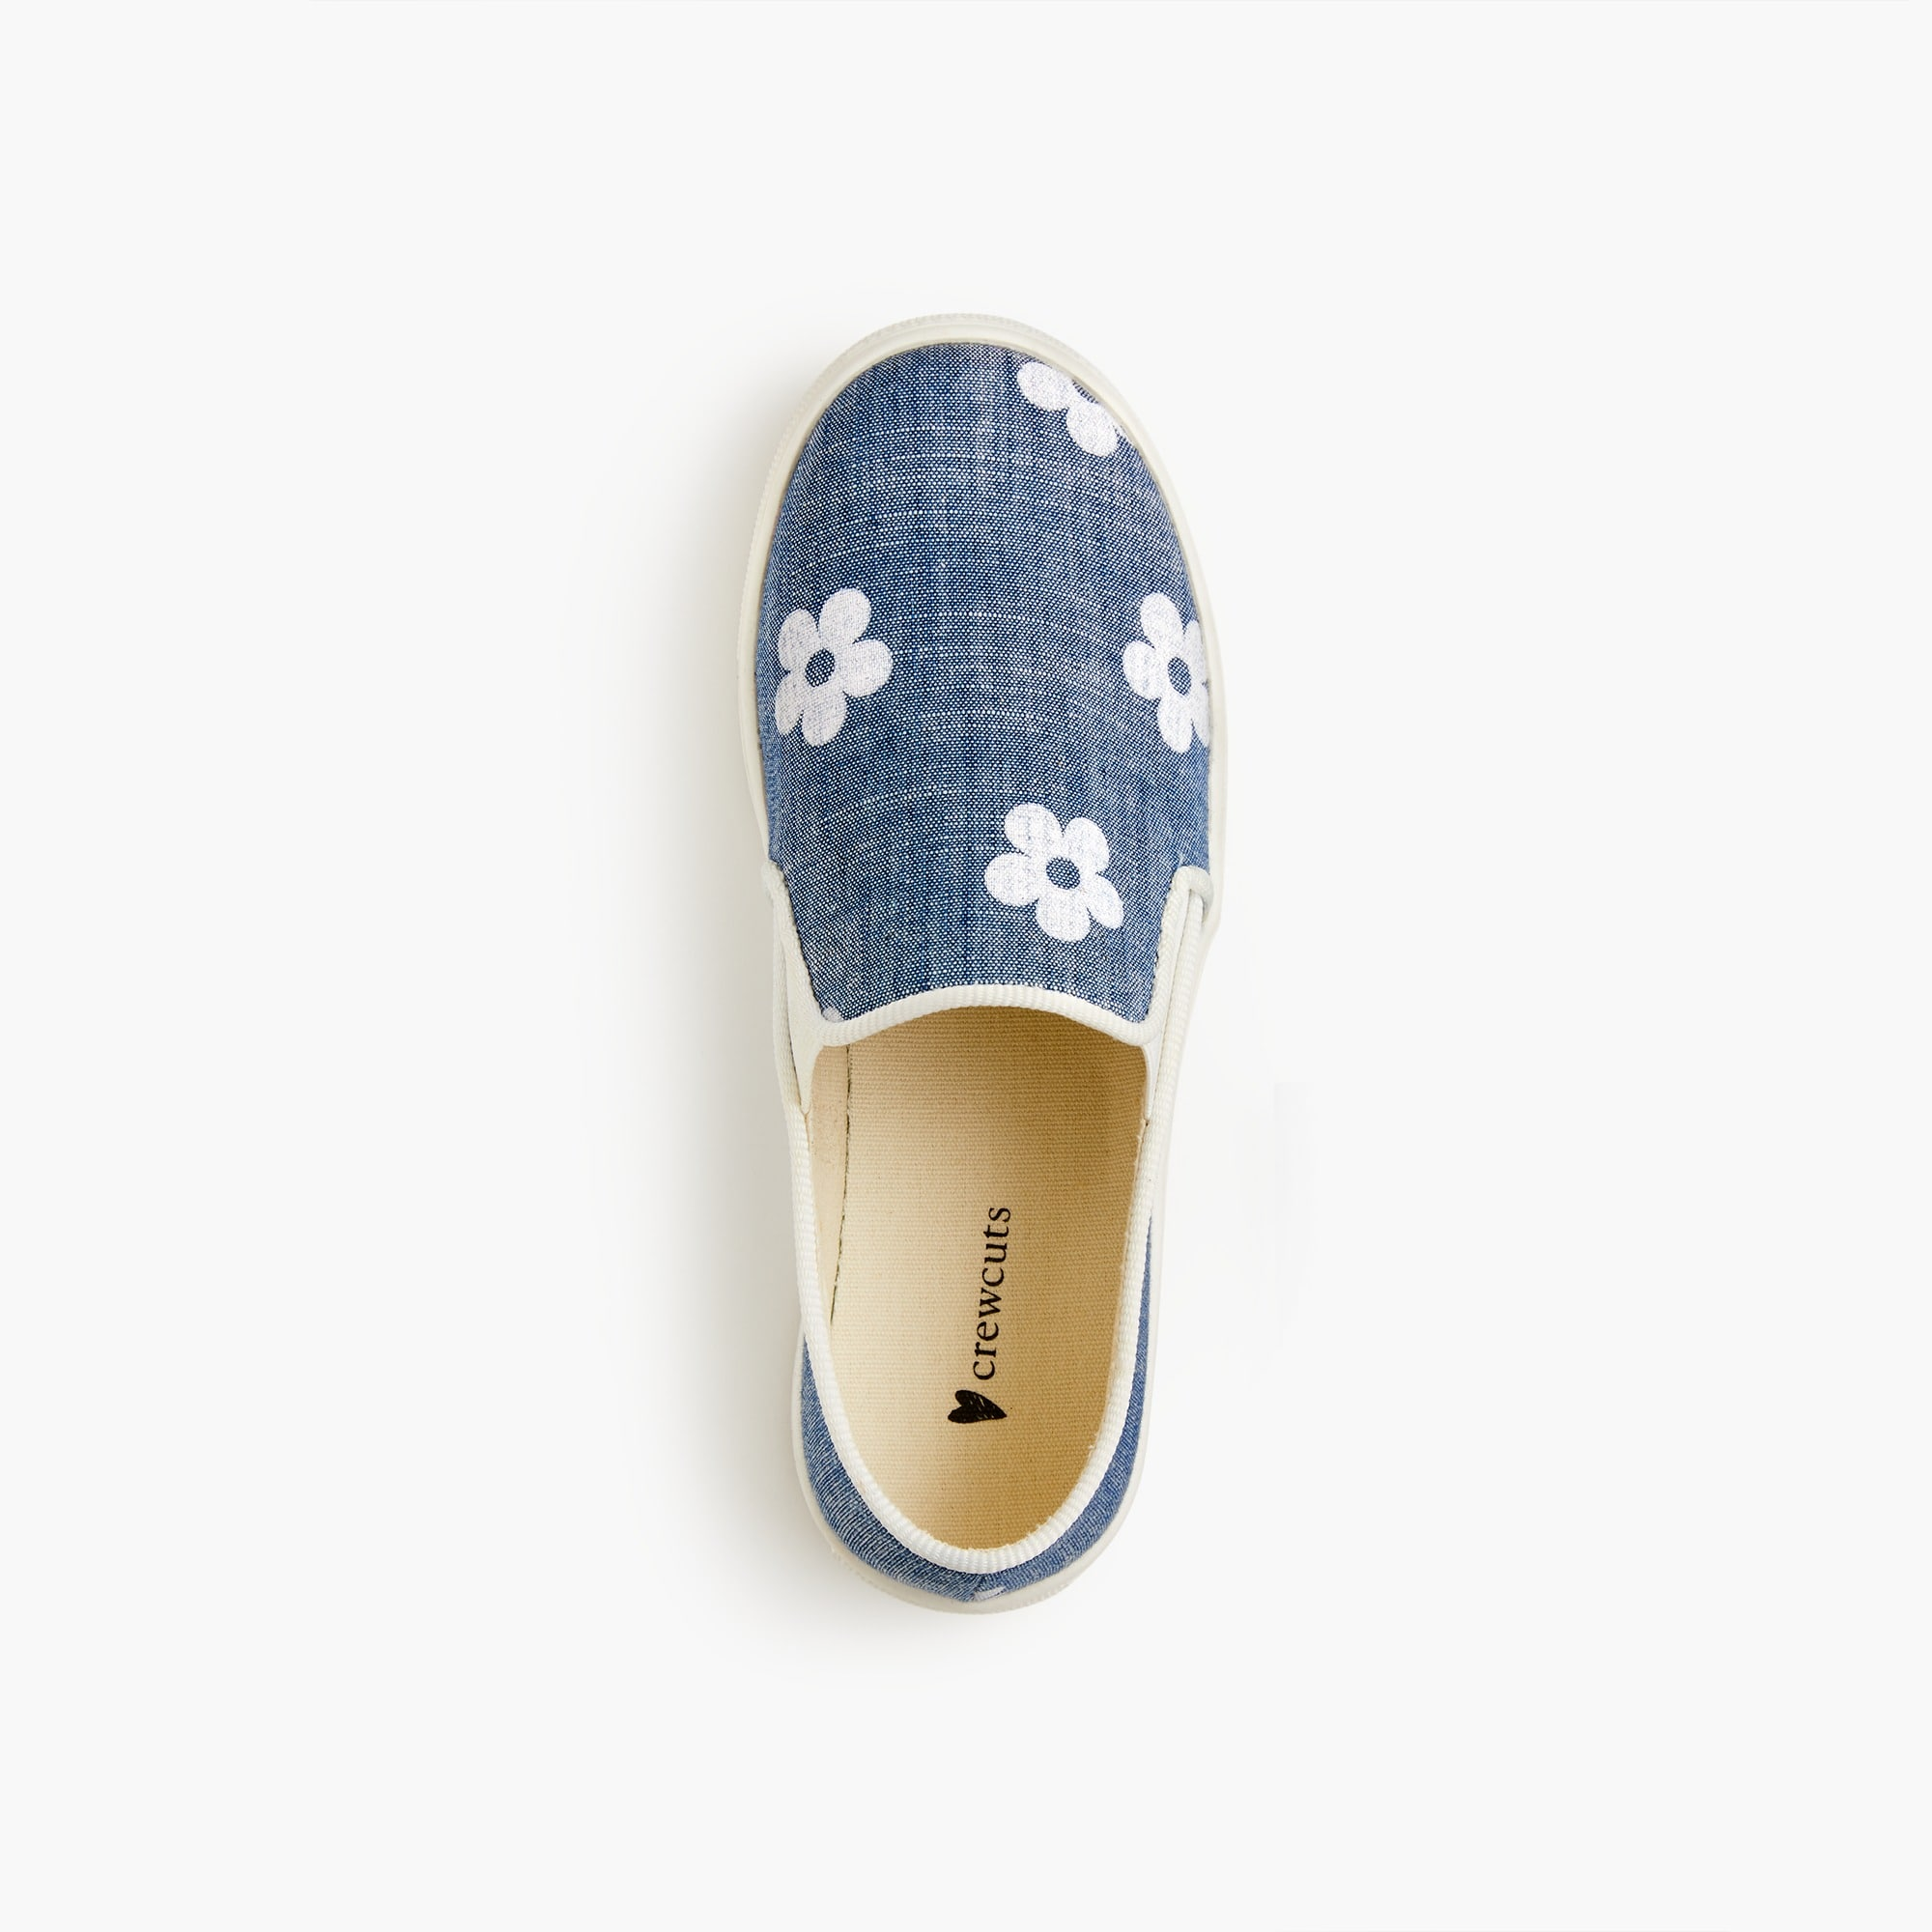 Image 2 for Girls' daisy slip-on sneakers